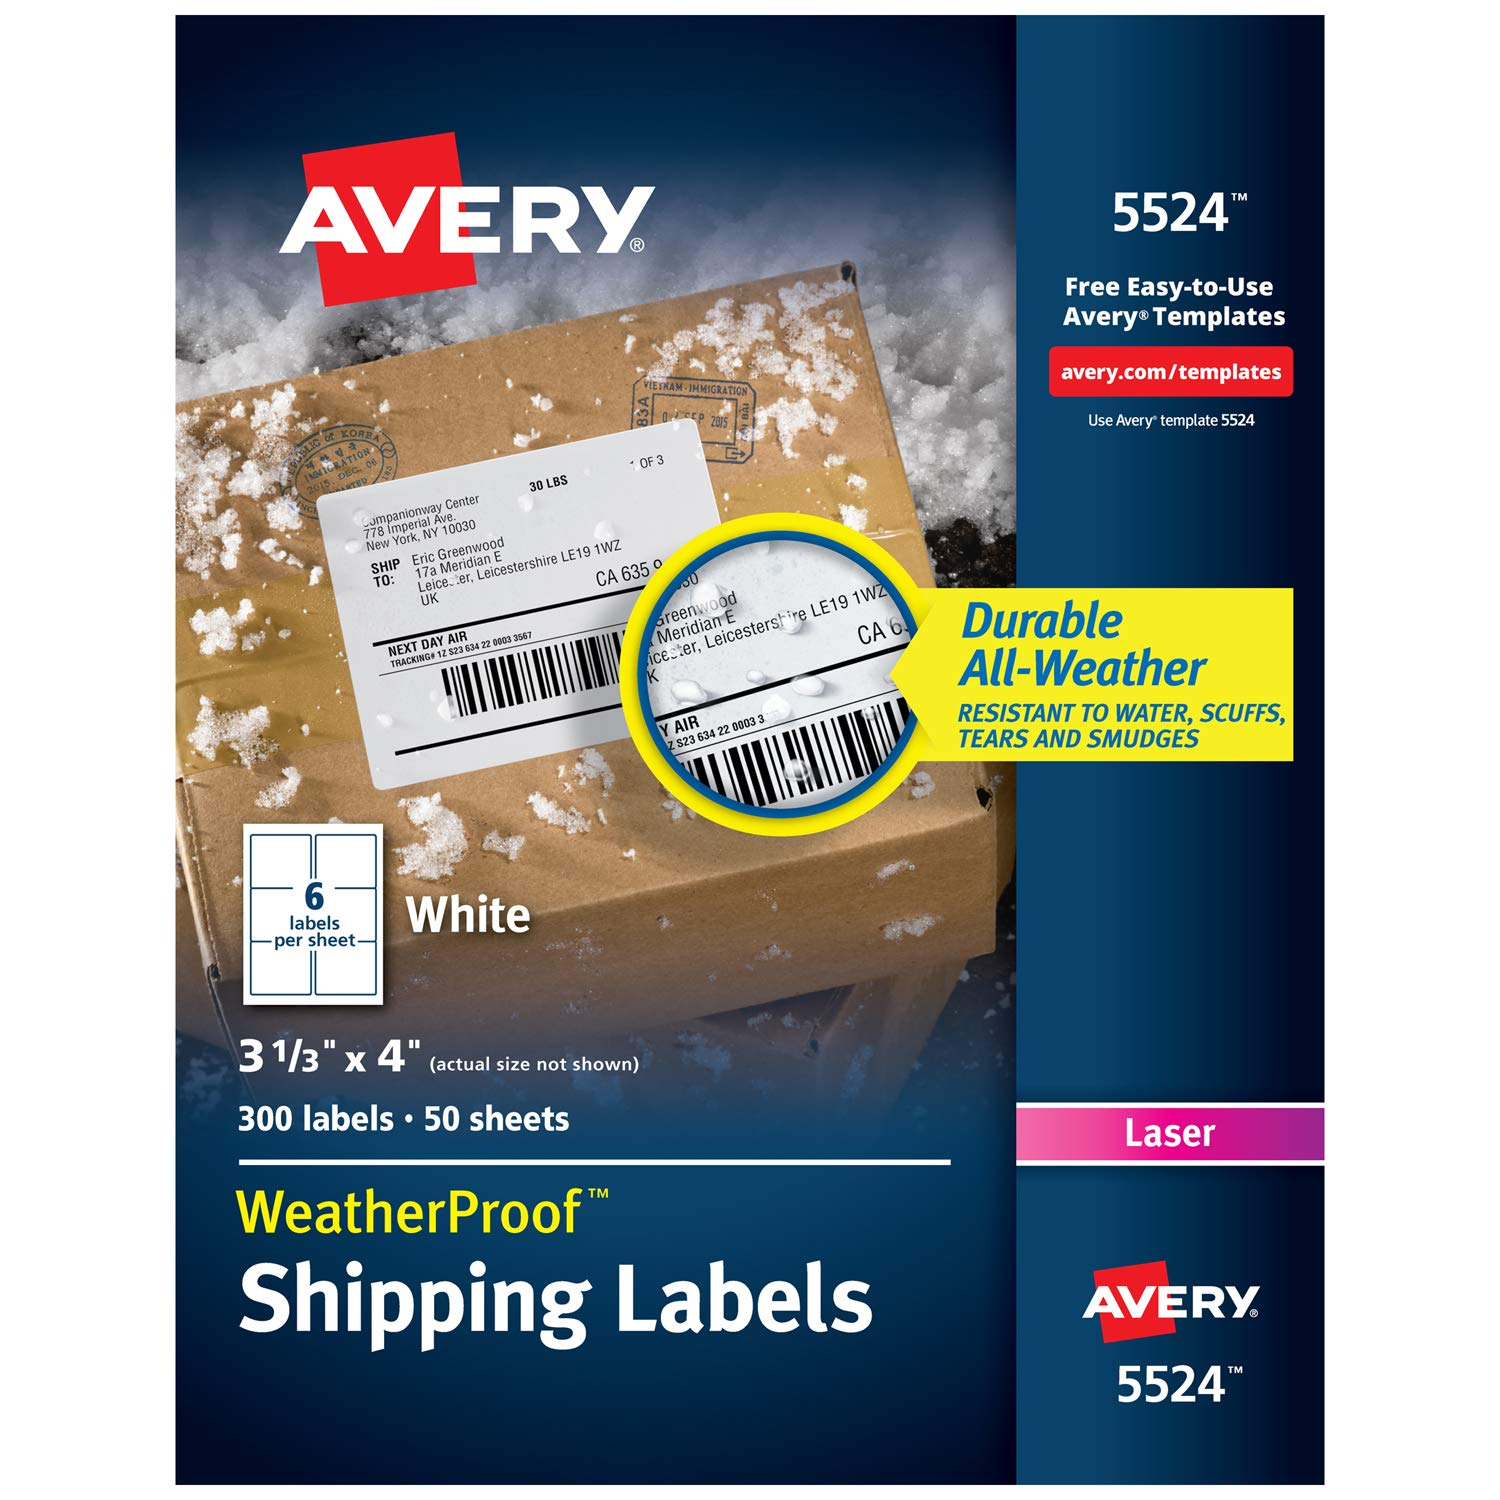 Avery WeatherProof Mailing Labels with TrueBlock Technology for Laser Printers 3-1/3'' x 4'', Box of 300 (5524) by AVERY